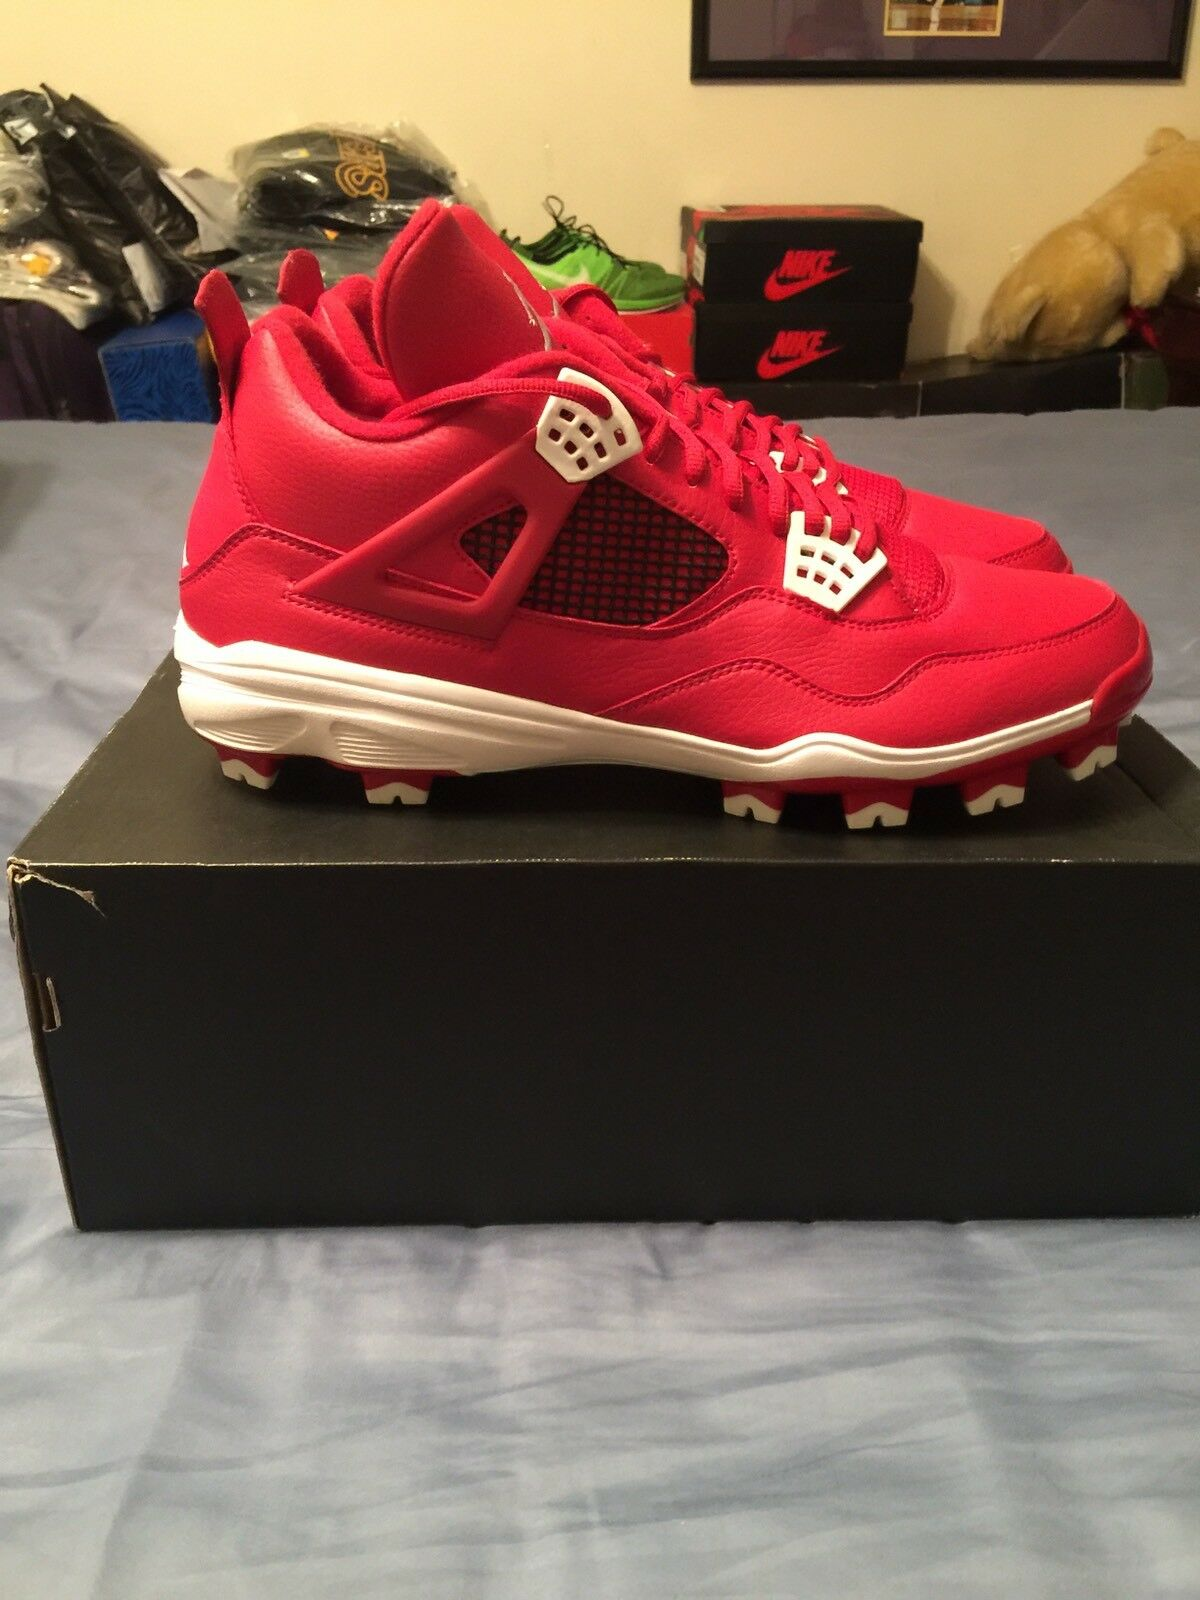 Nike Air Jordan Retro IV Gym Red Baseball Cleats sz 13 LIMITED SOLD OUT